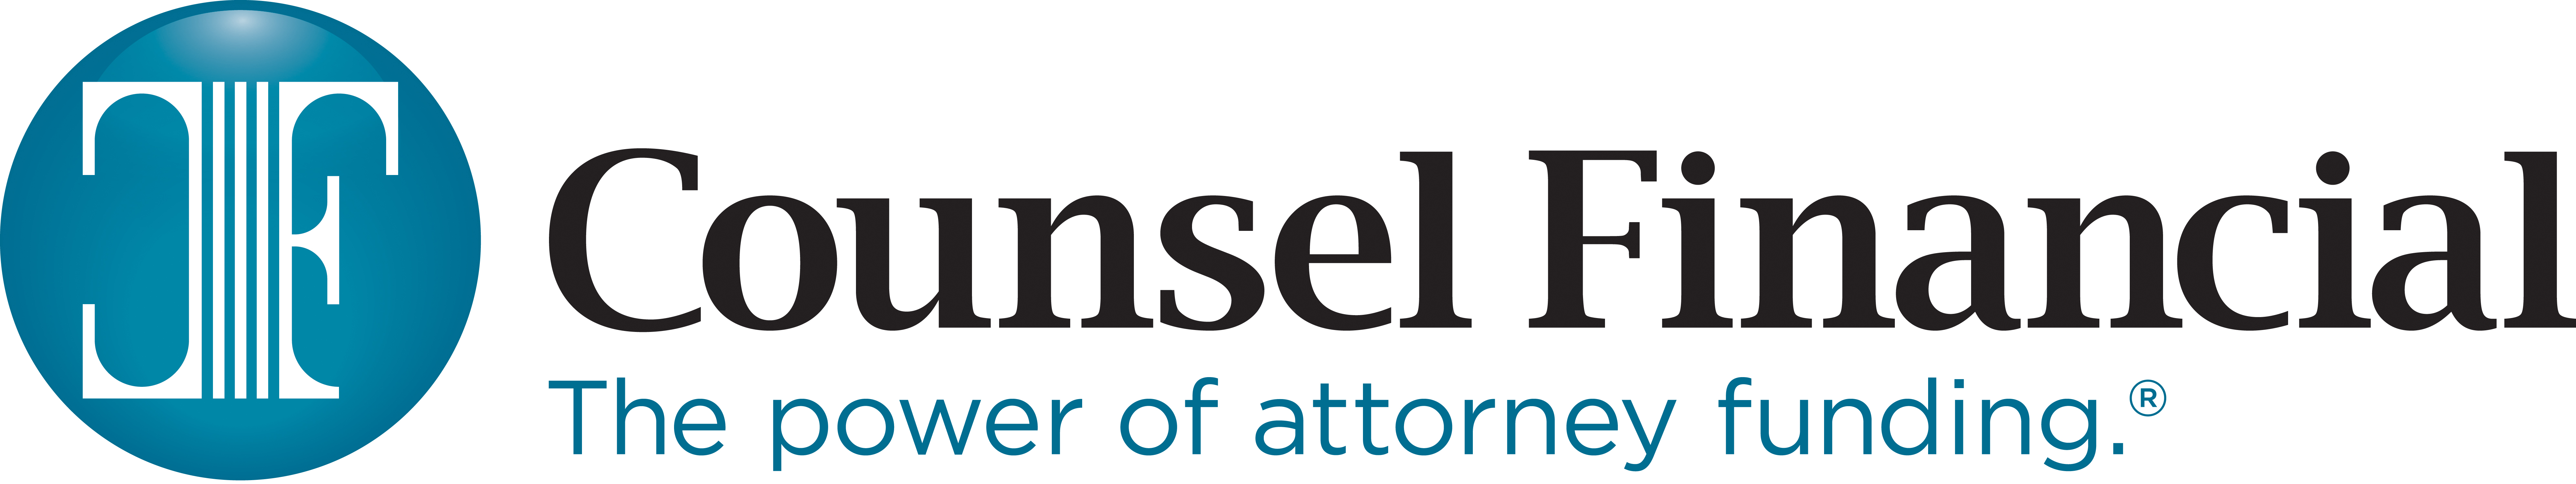 Counsel financial